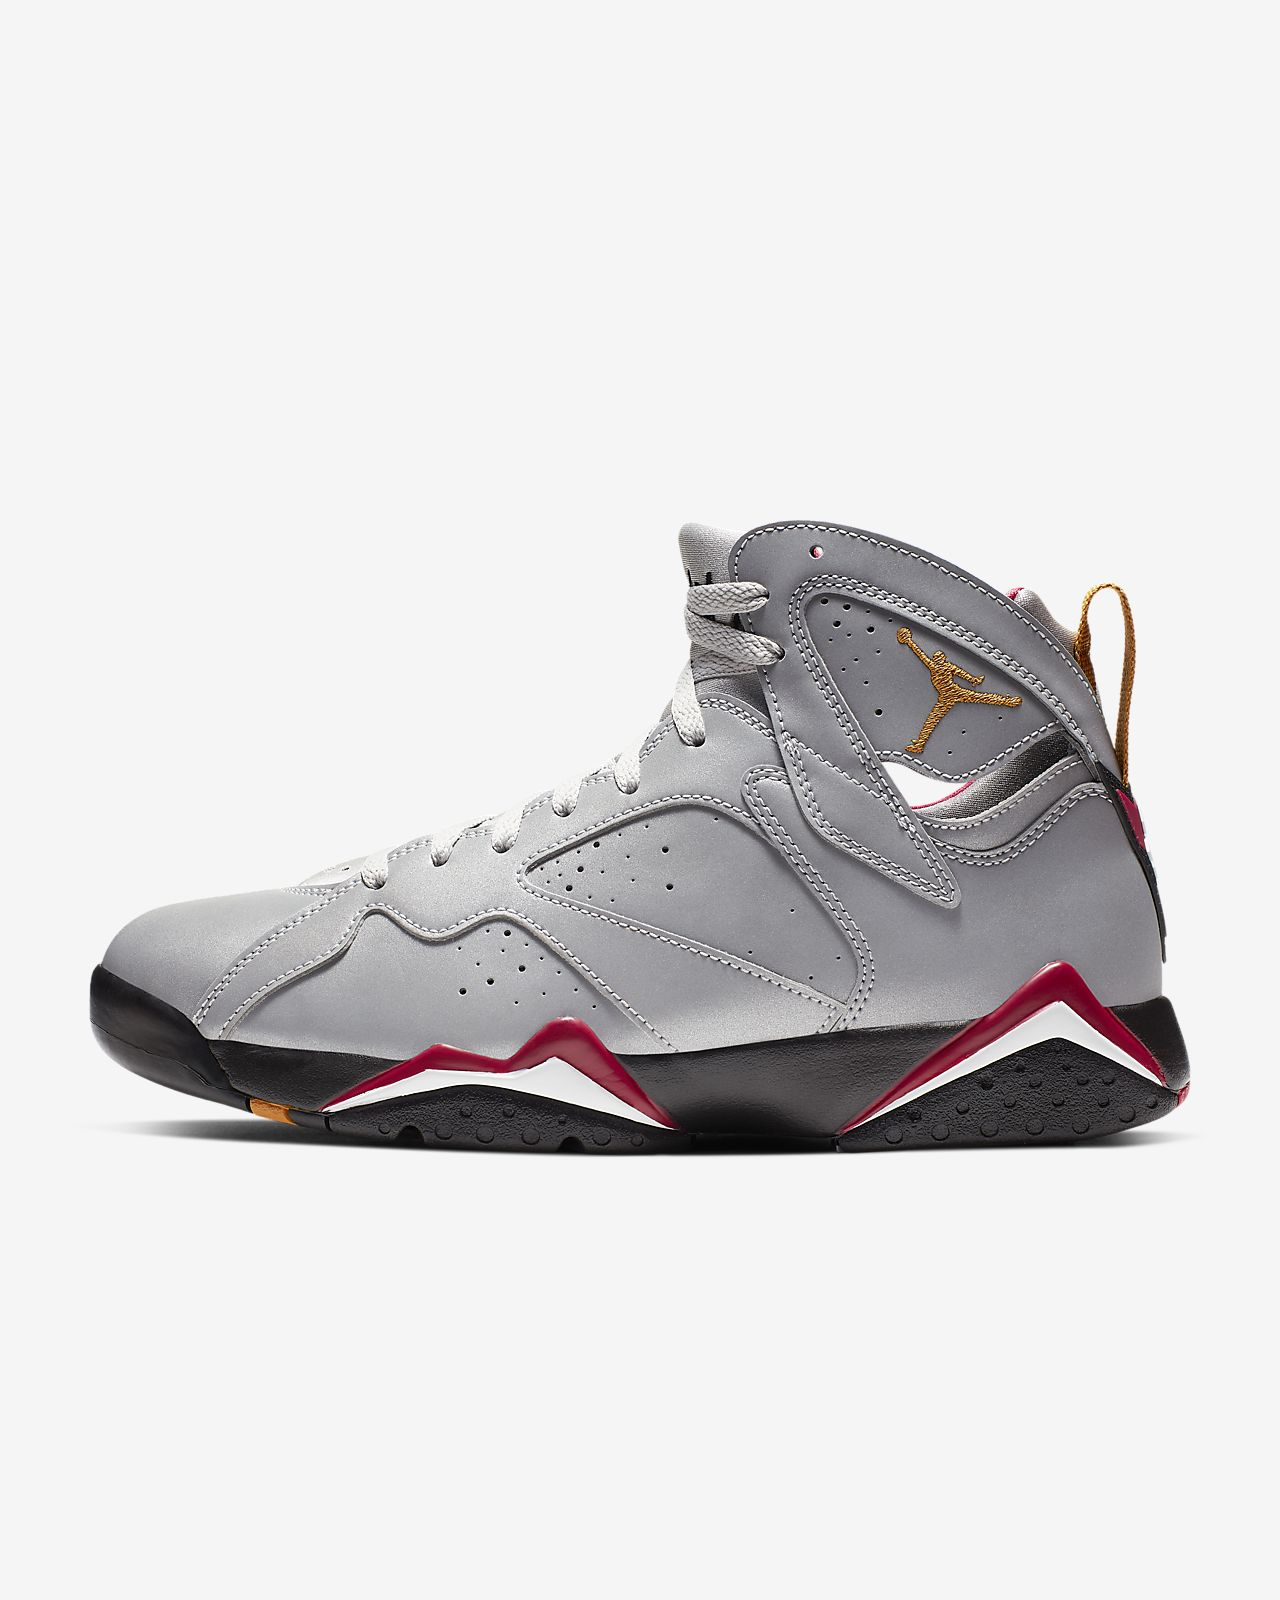 71c37f1533b Air Jordan 7 Retro SP Men's Shoe. Nike.com VN